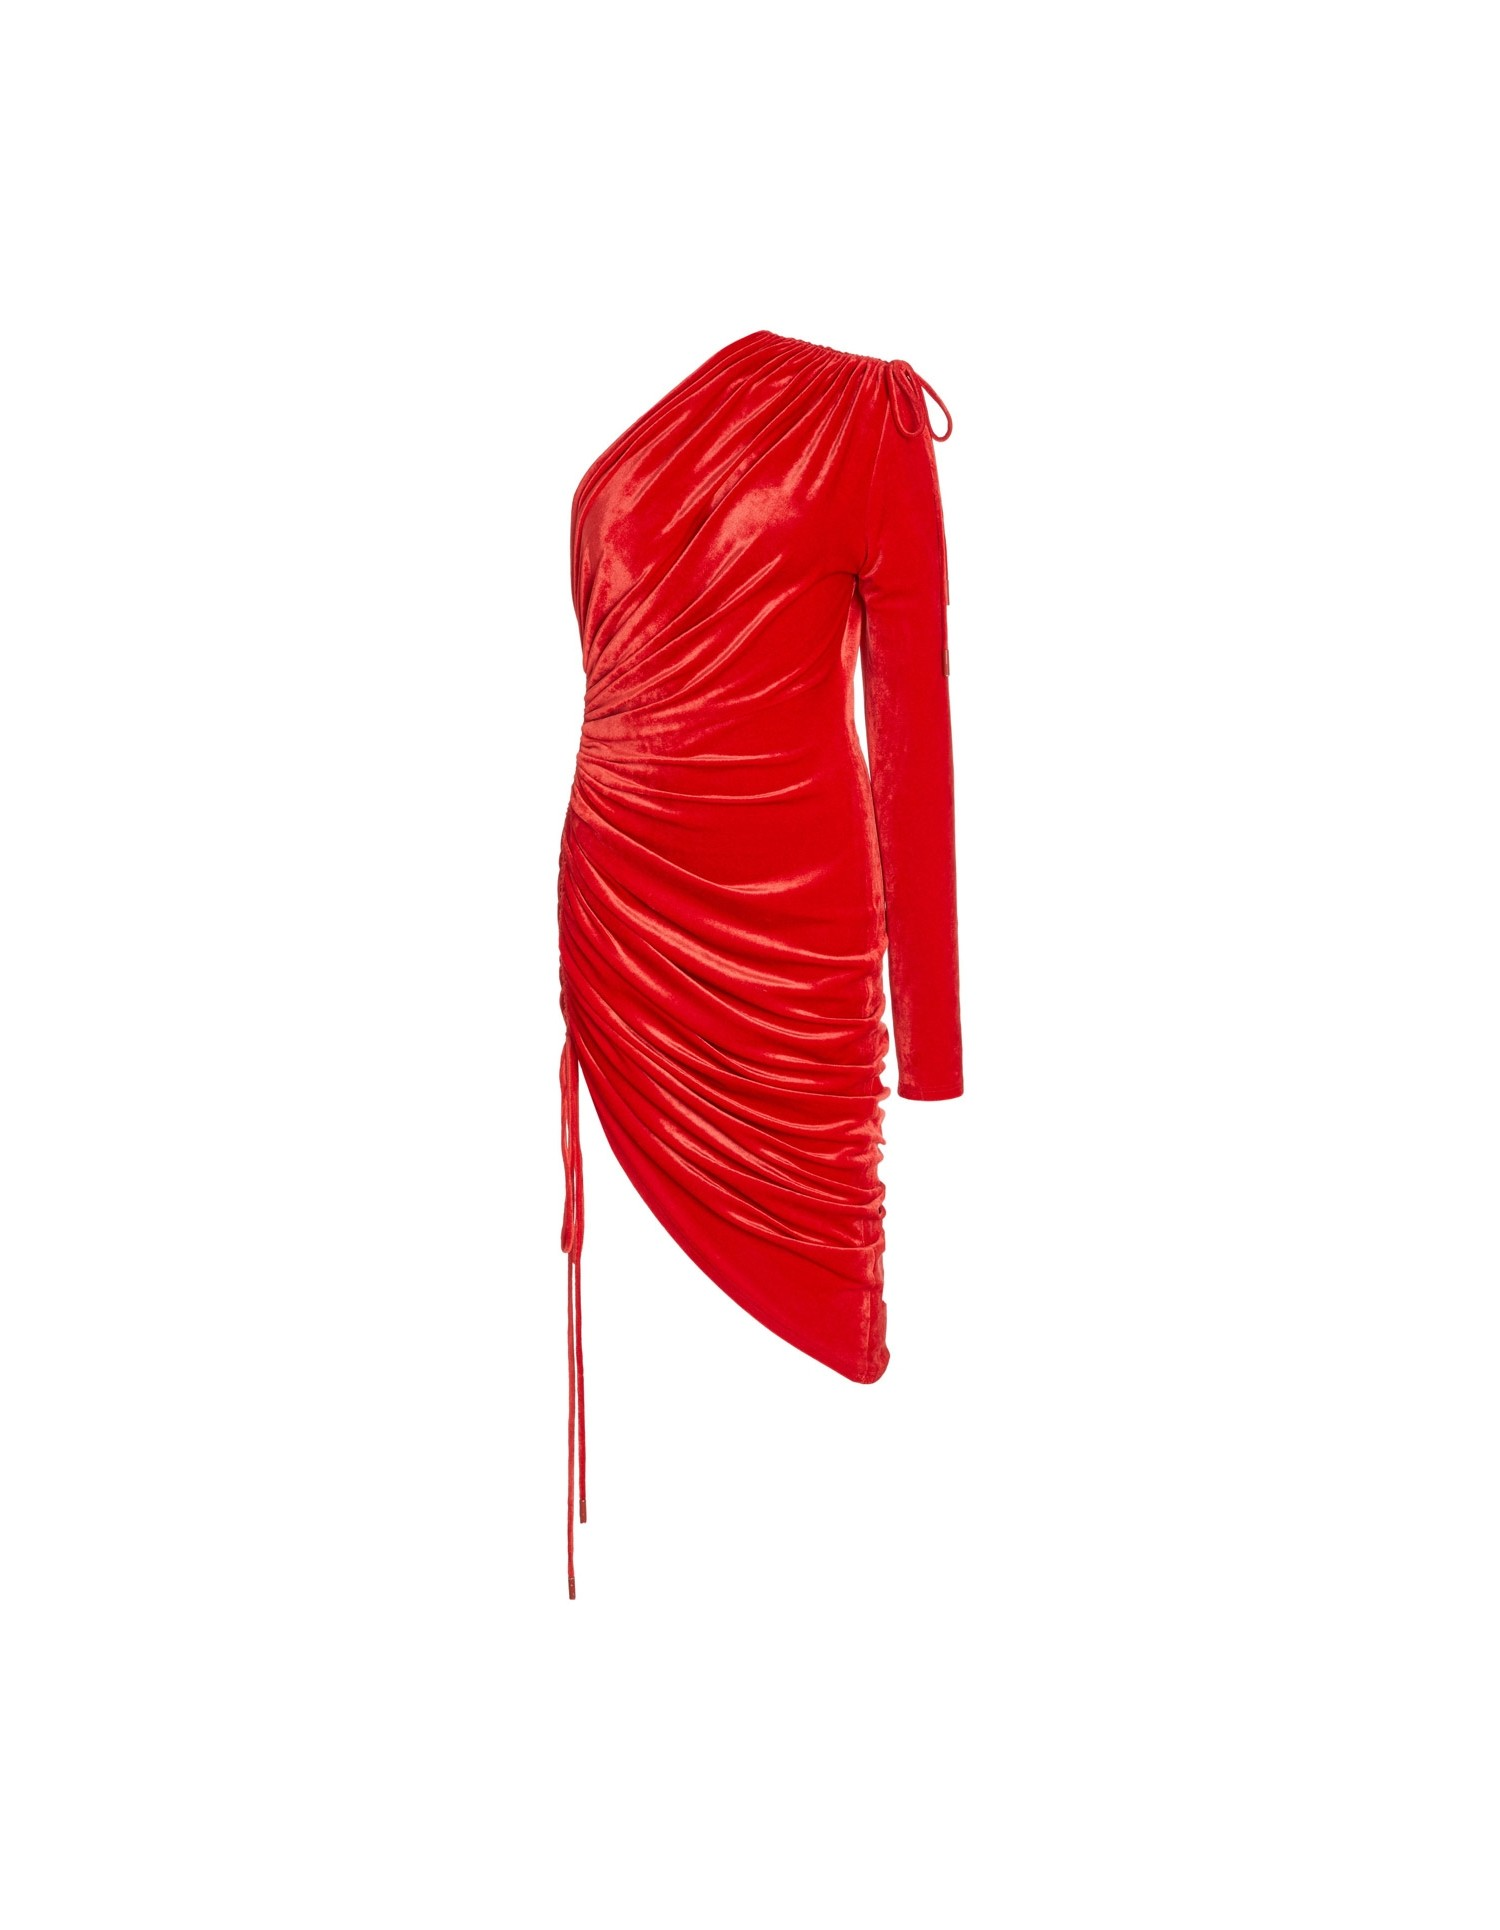 MONSE Velvet One Shoulder Drawstring Dress in Scarlet Flat Front